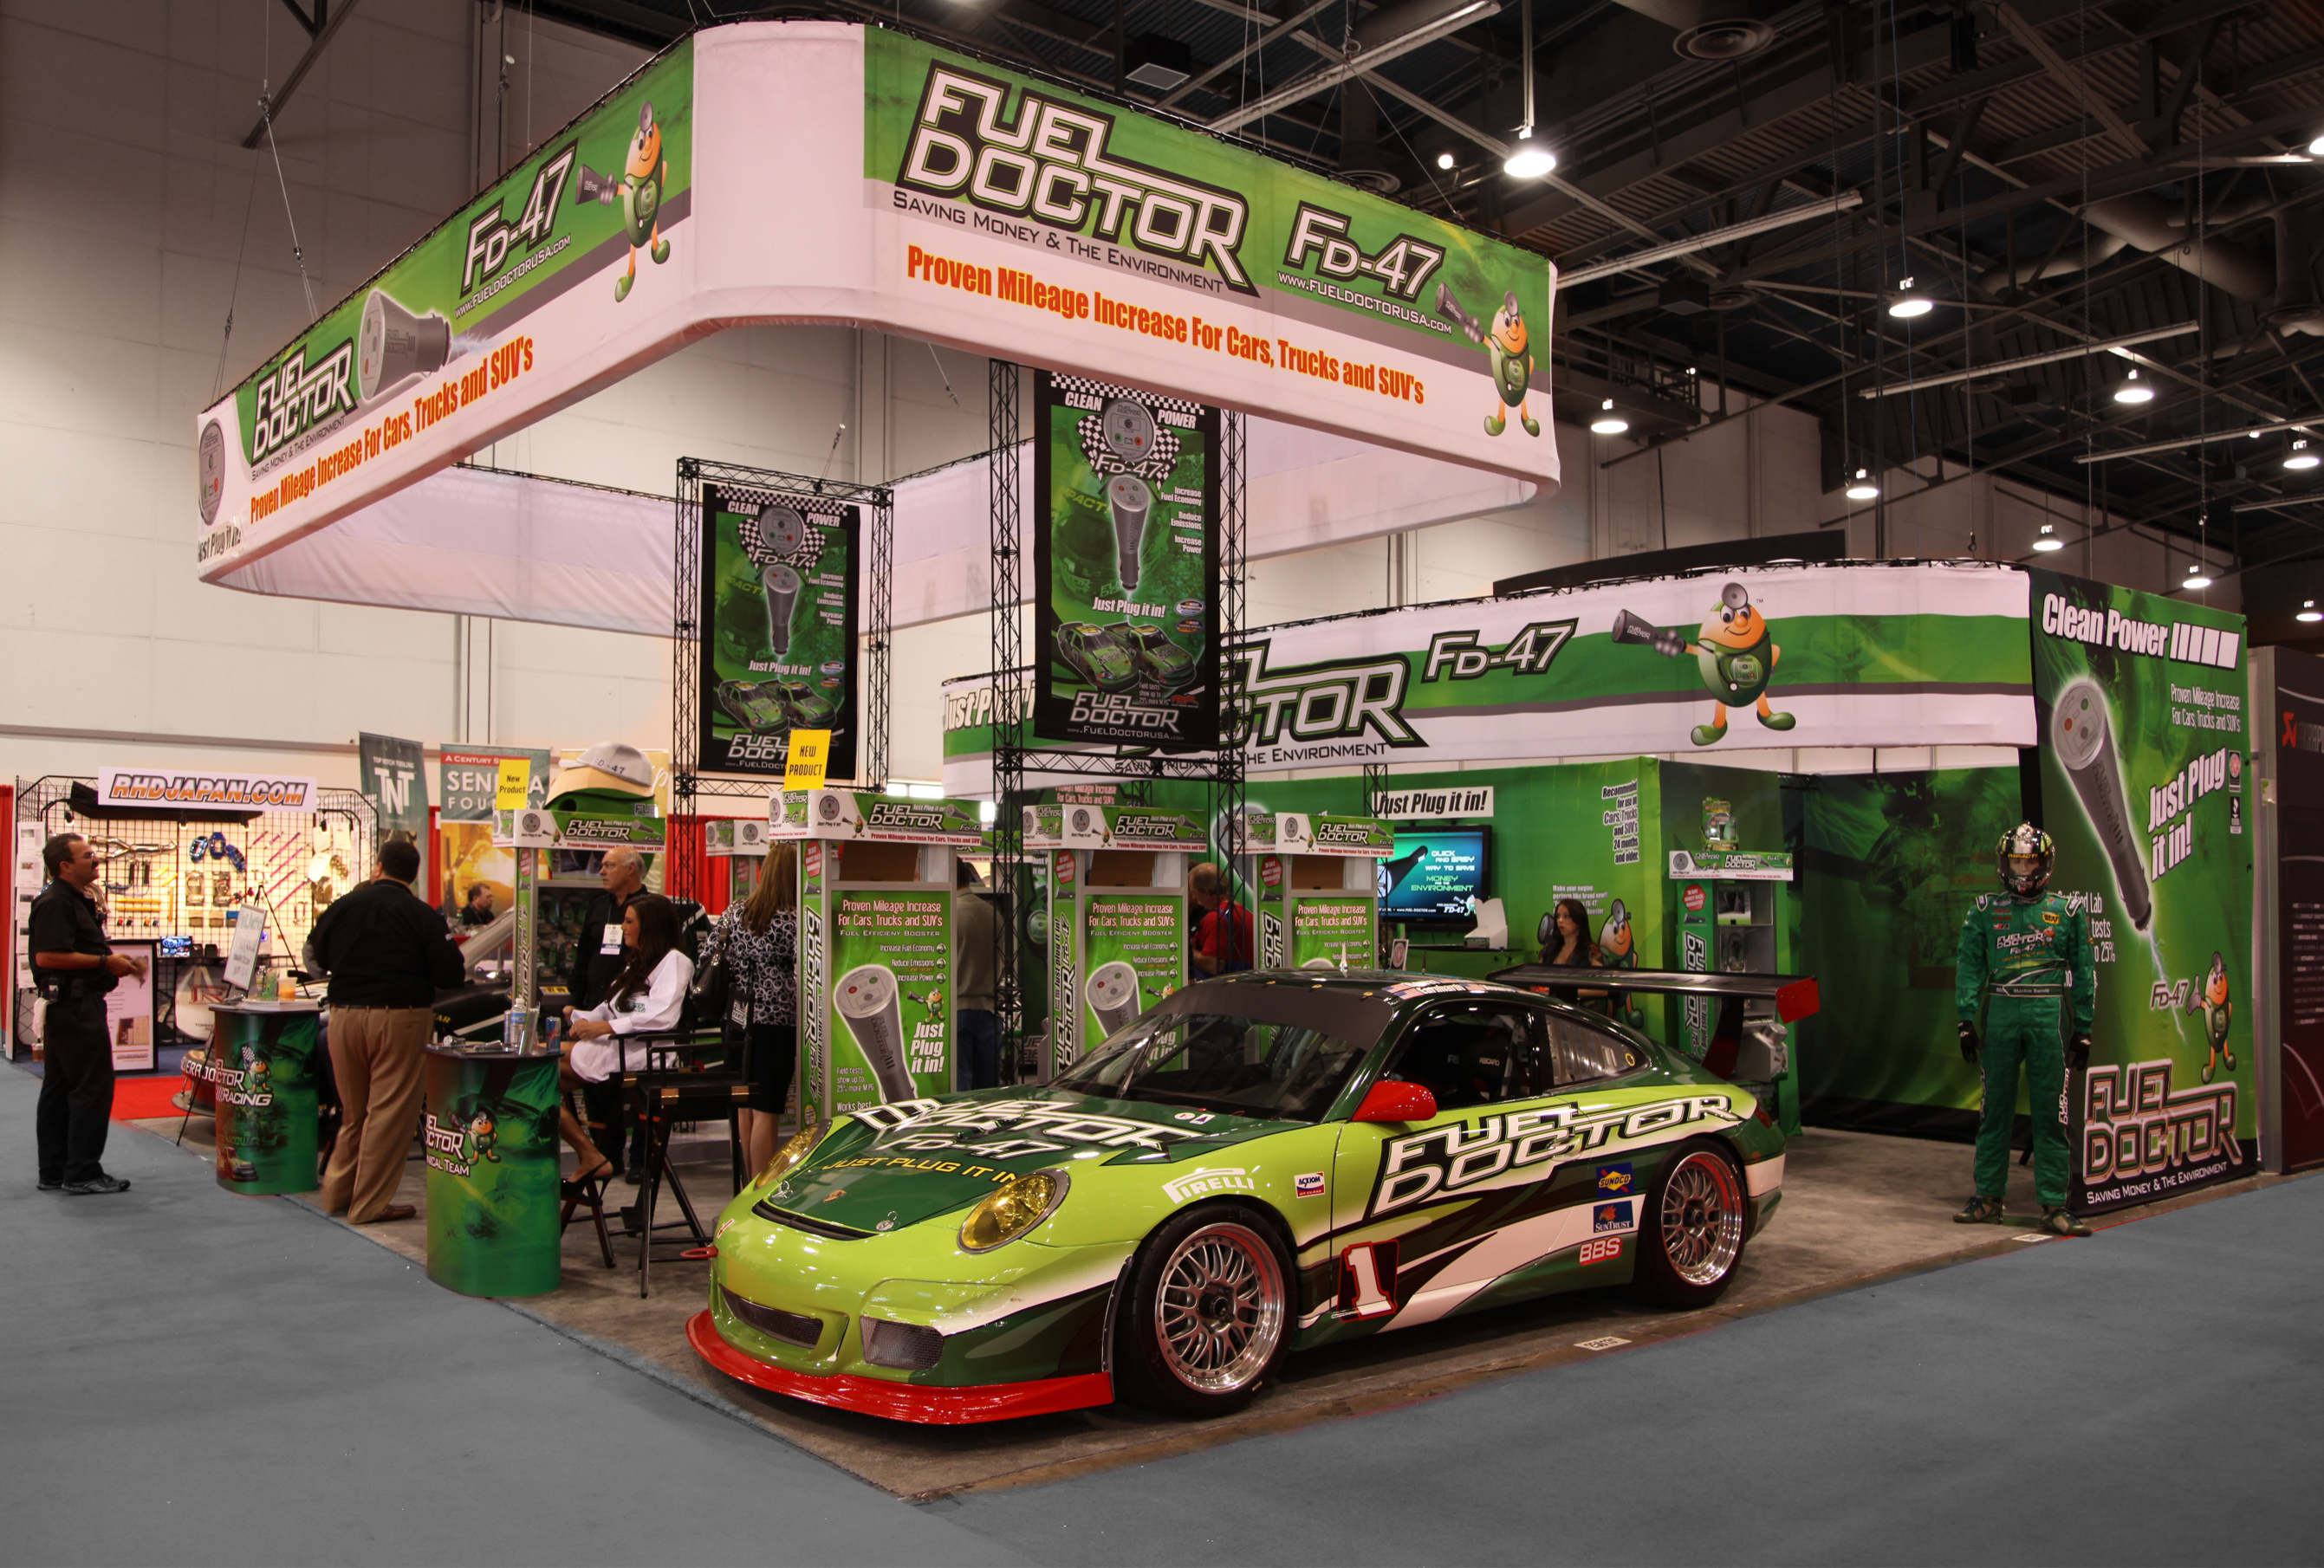 X-10 Fuel Doctor Messestand